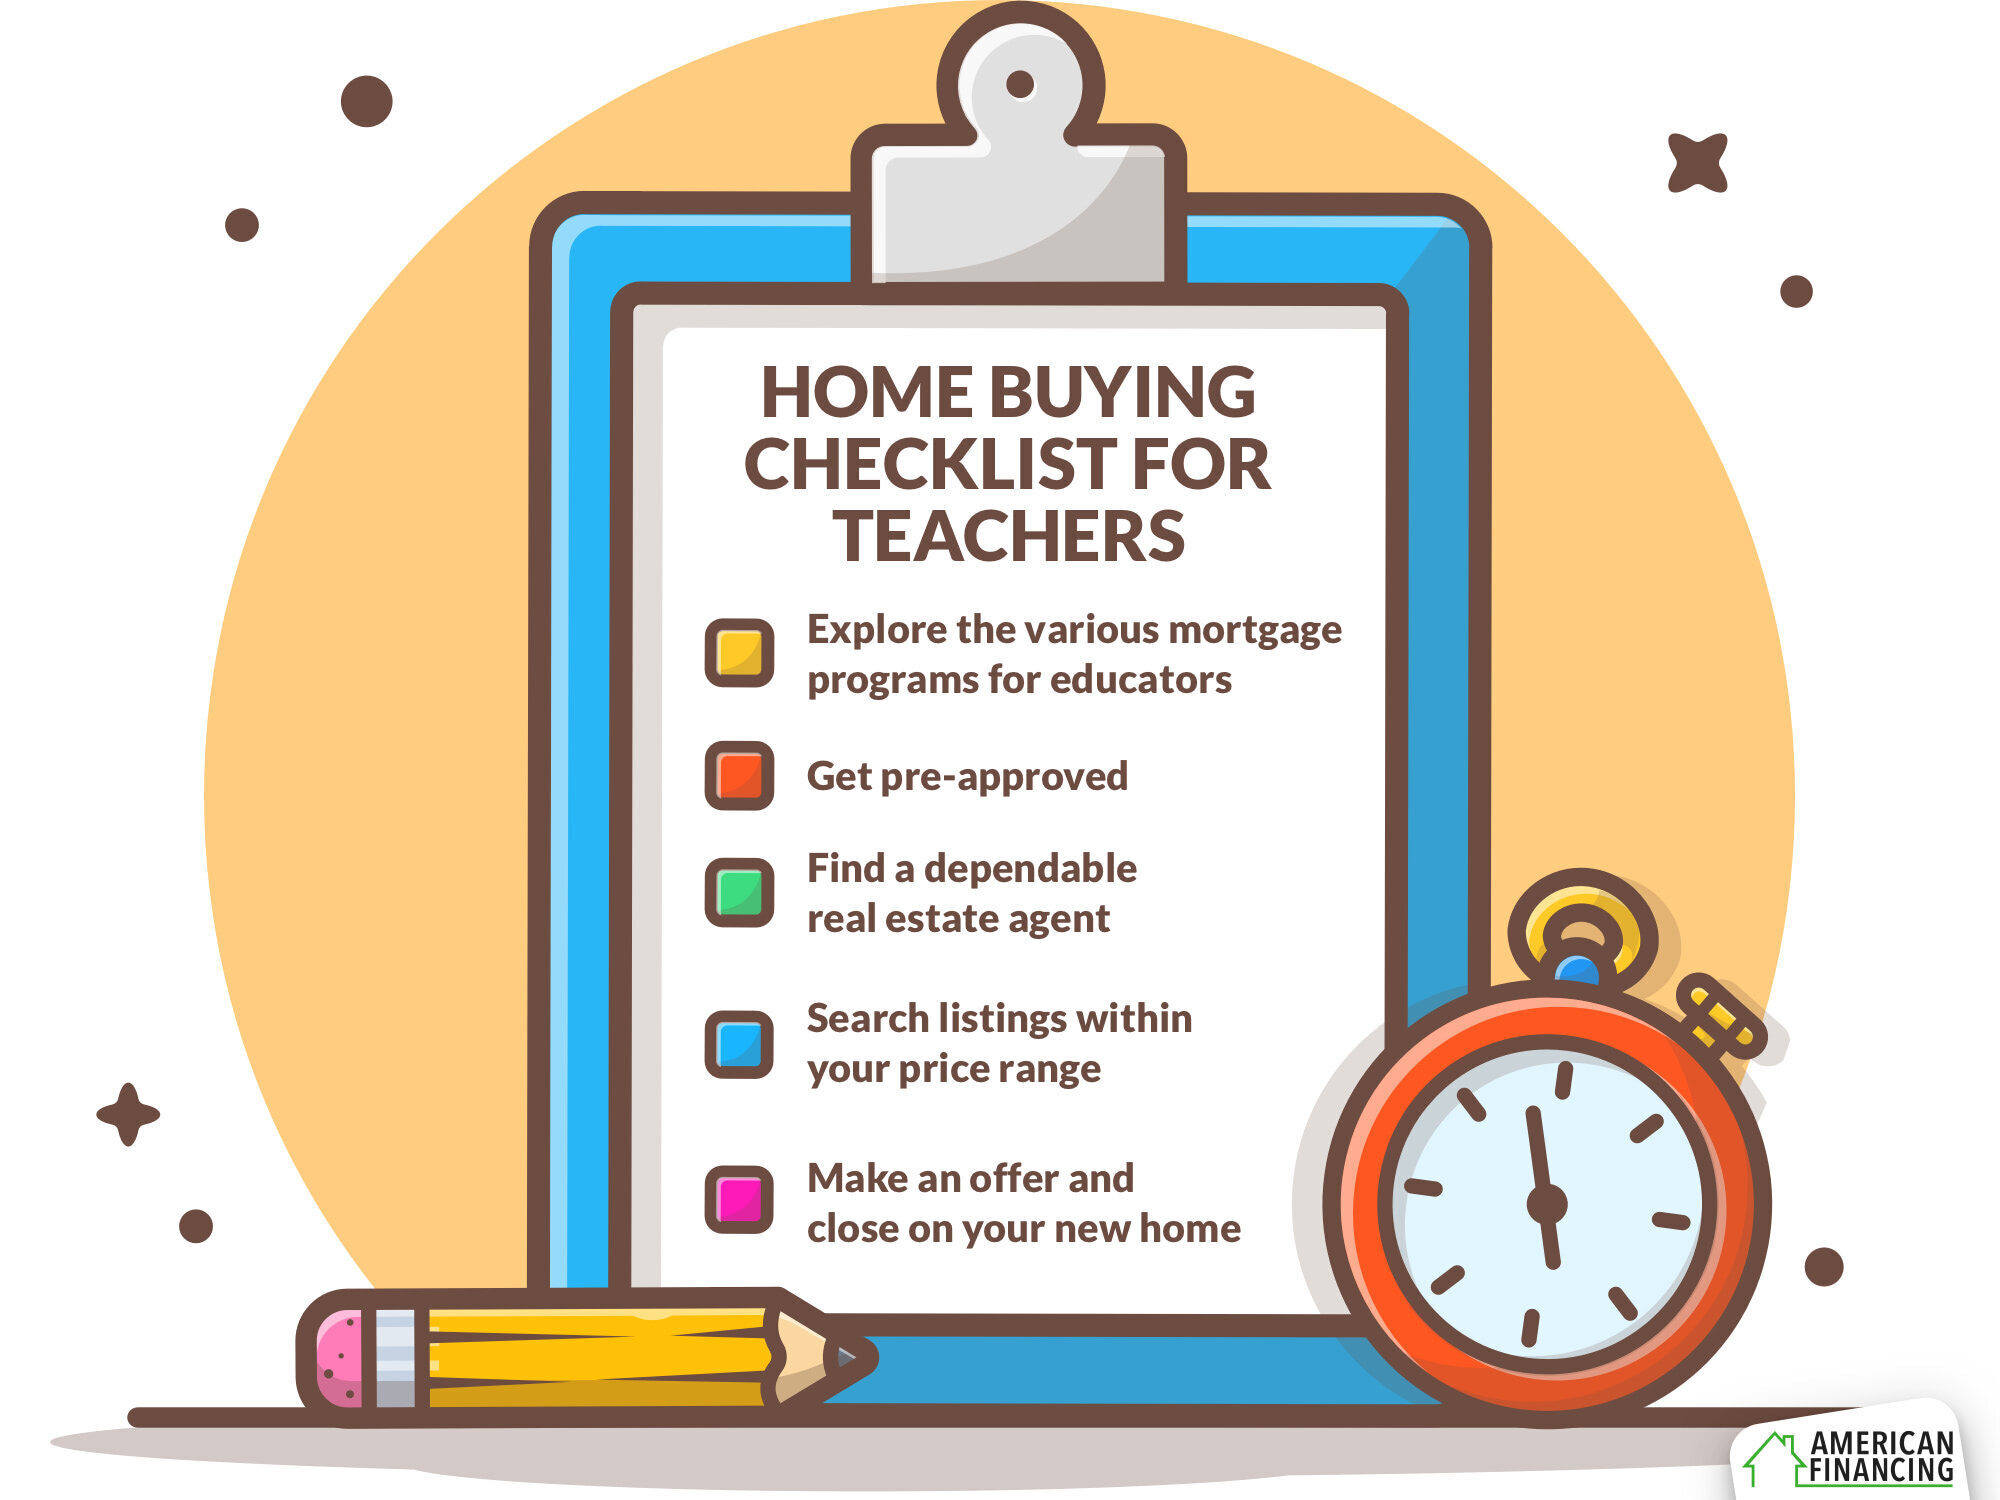 Home buying checklist for teachers